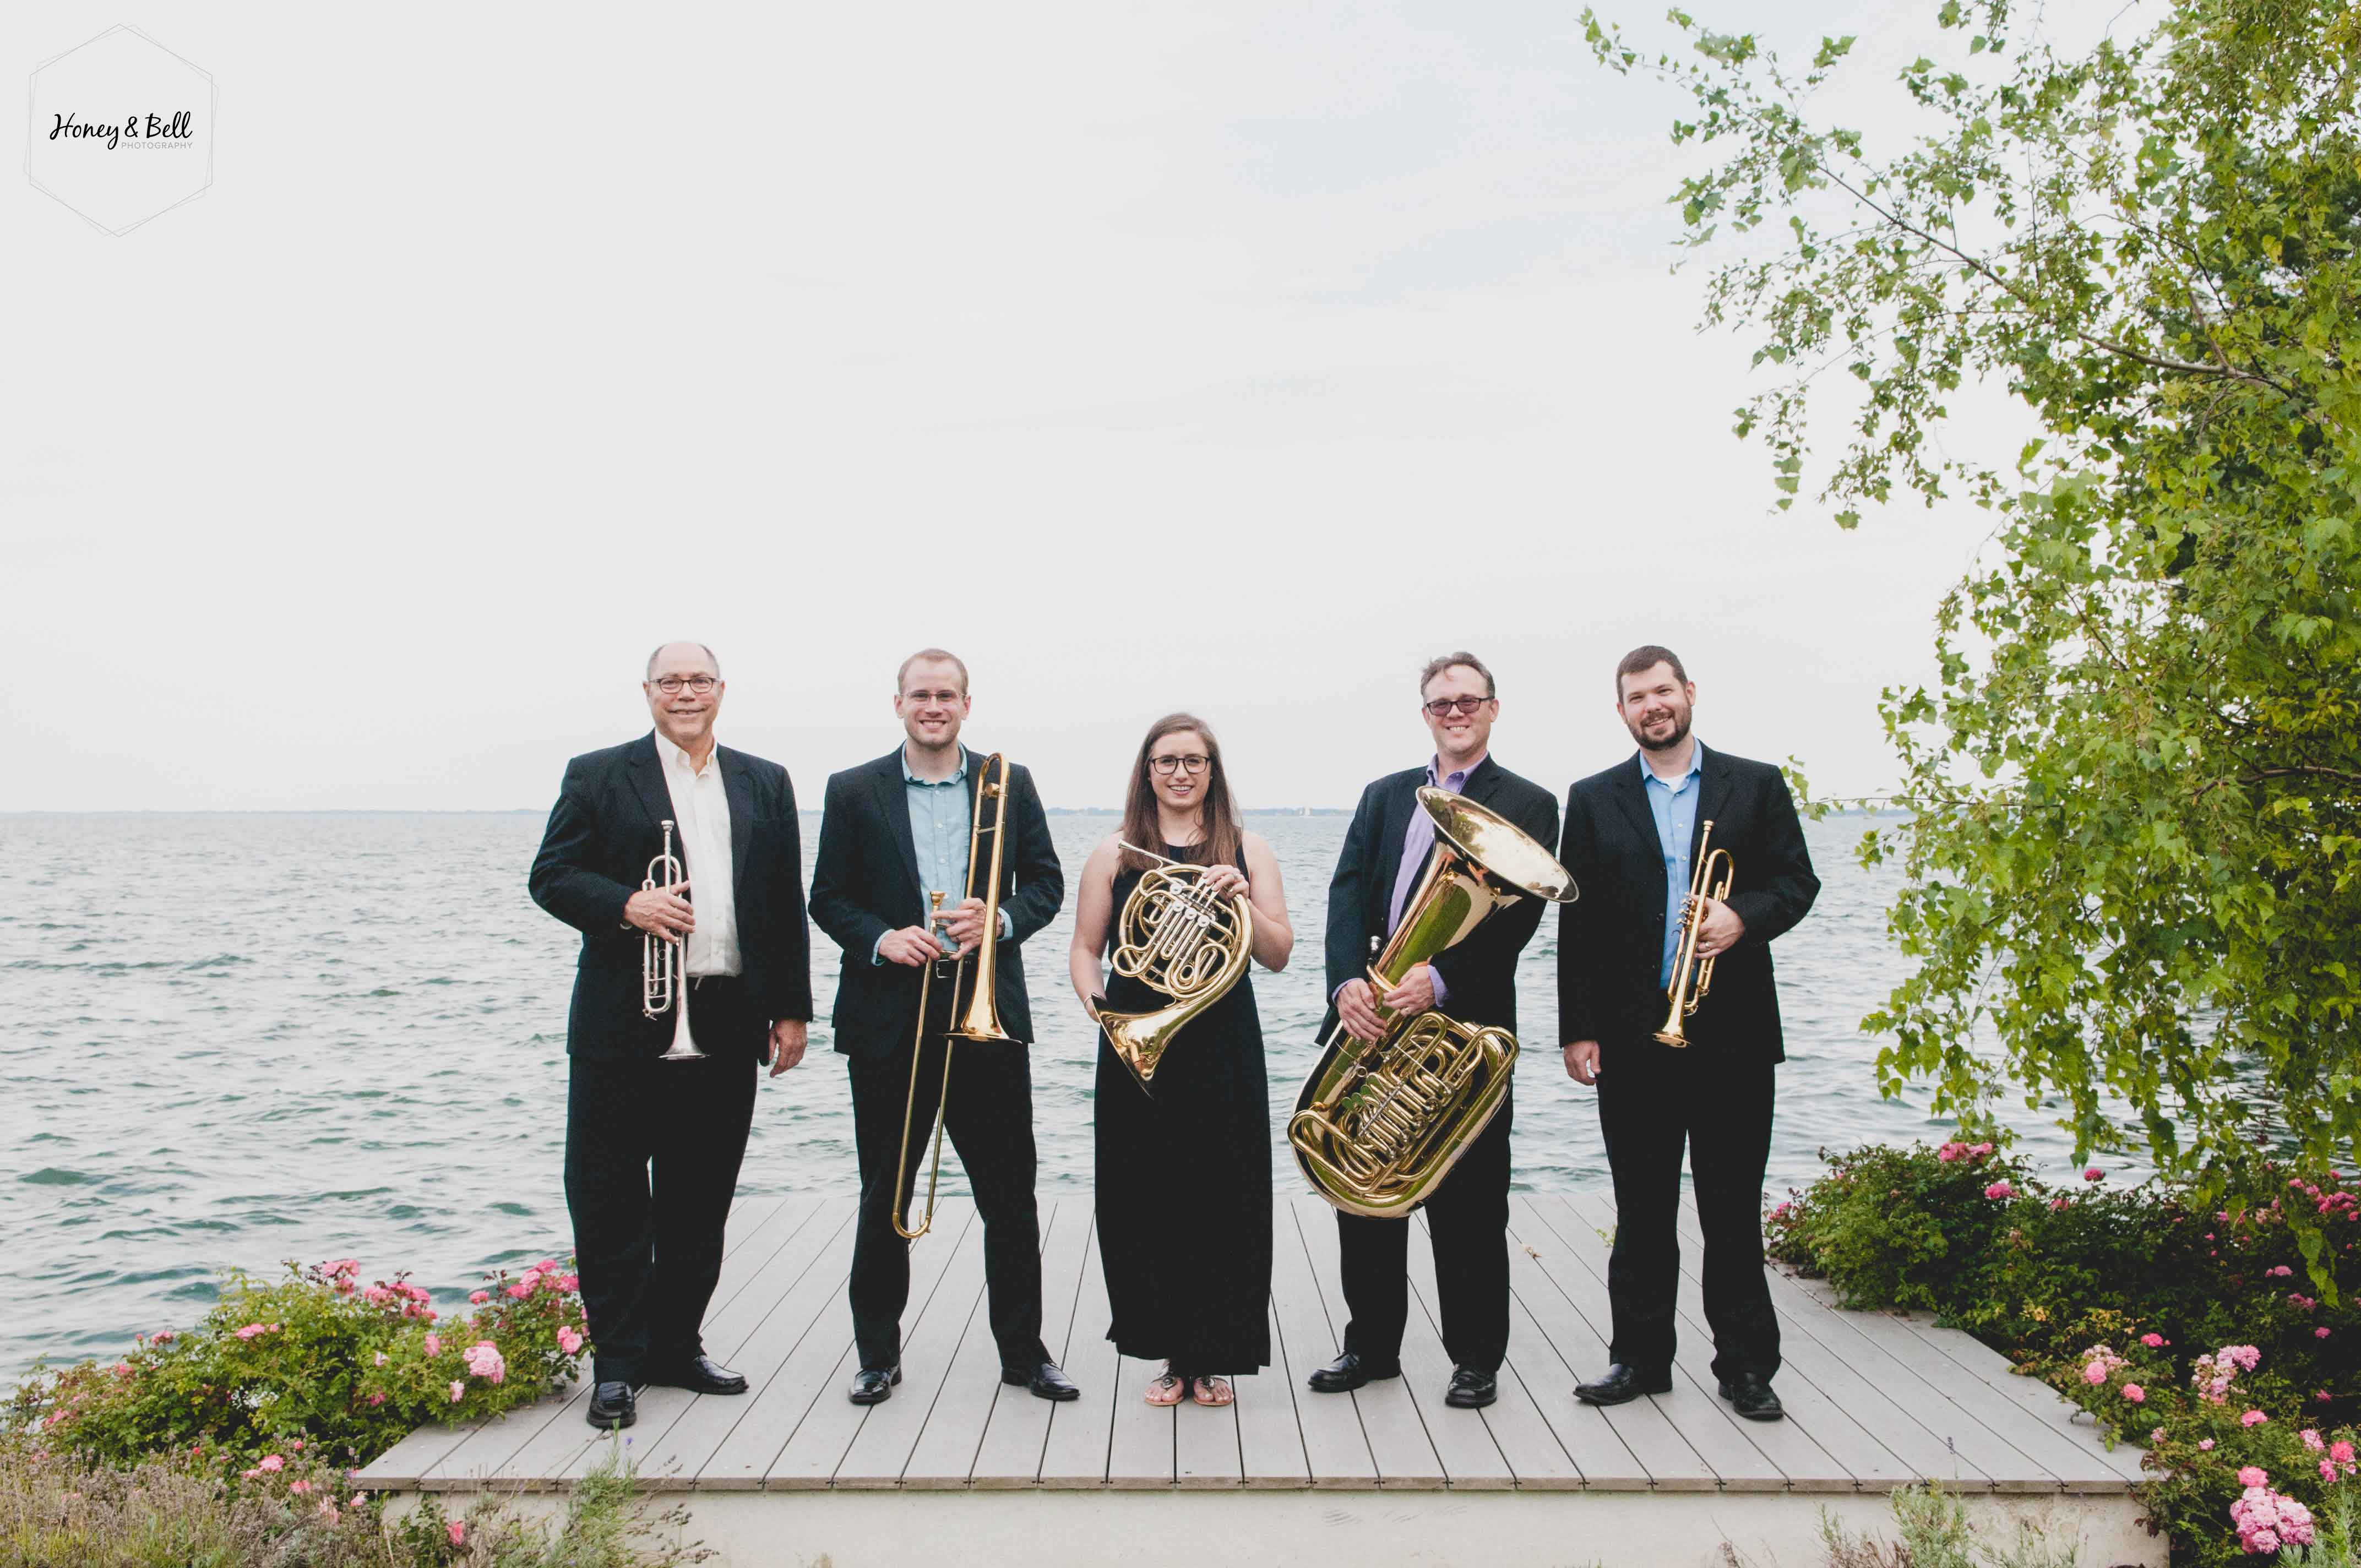 north-of-canada-brass-quintet-detroit-michigan-grosse-pointe-band-photographer-02